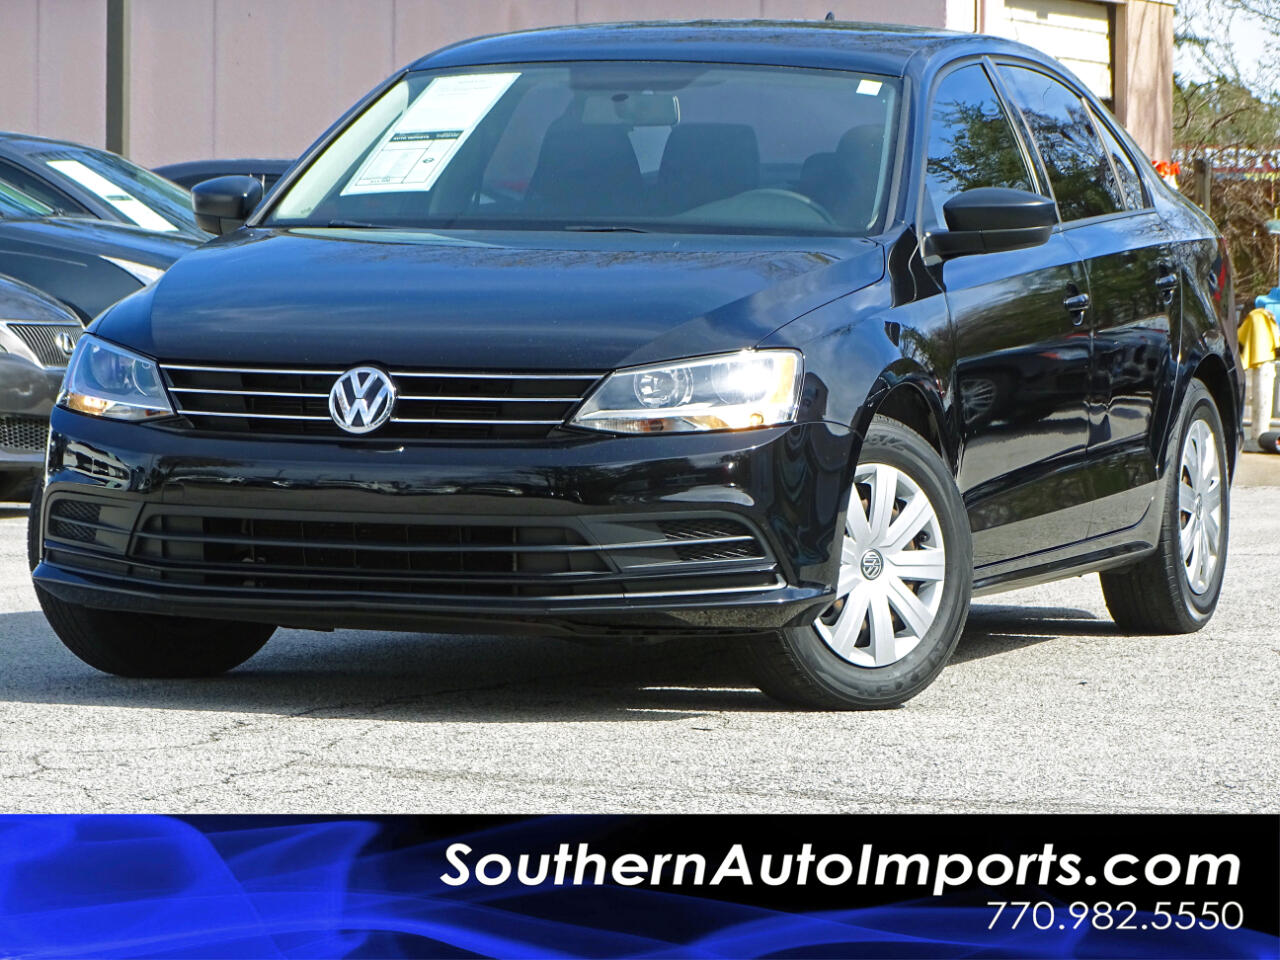 2015 Volkswagen Jetta Sedan S w/Technology Pkg Back Up Camera Keyless